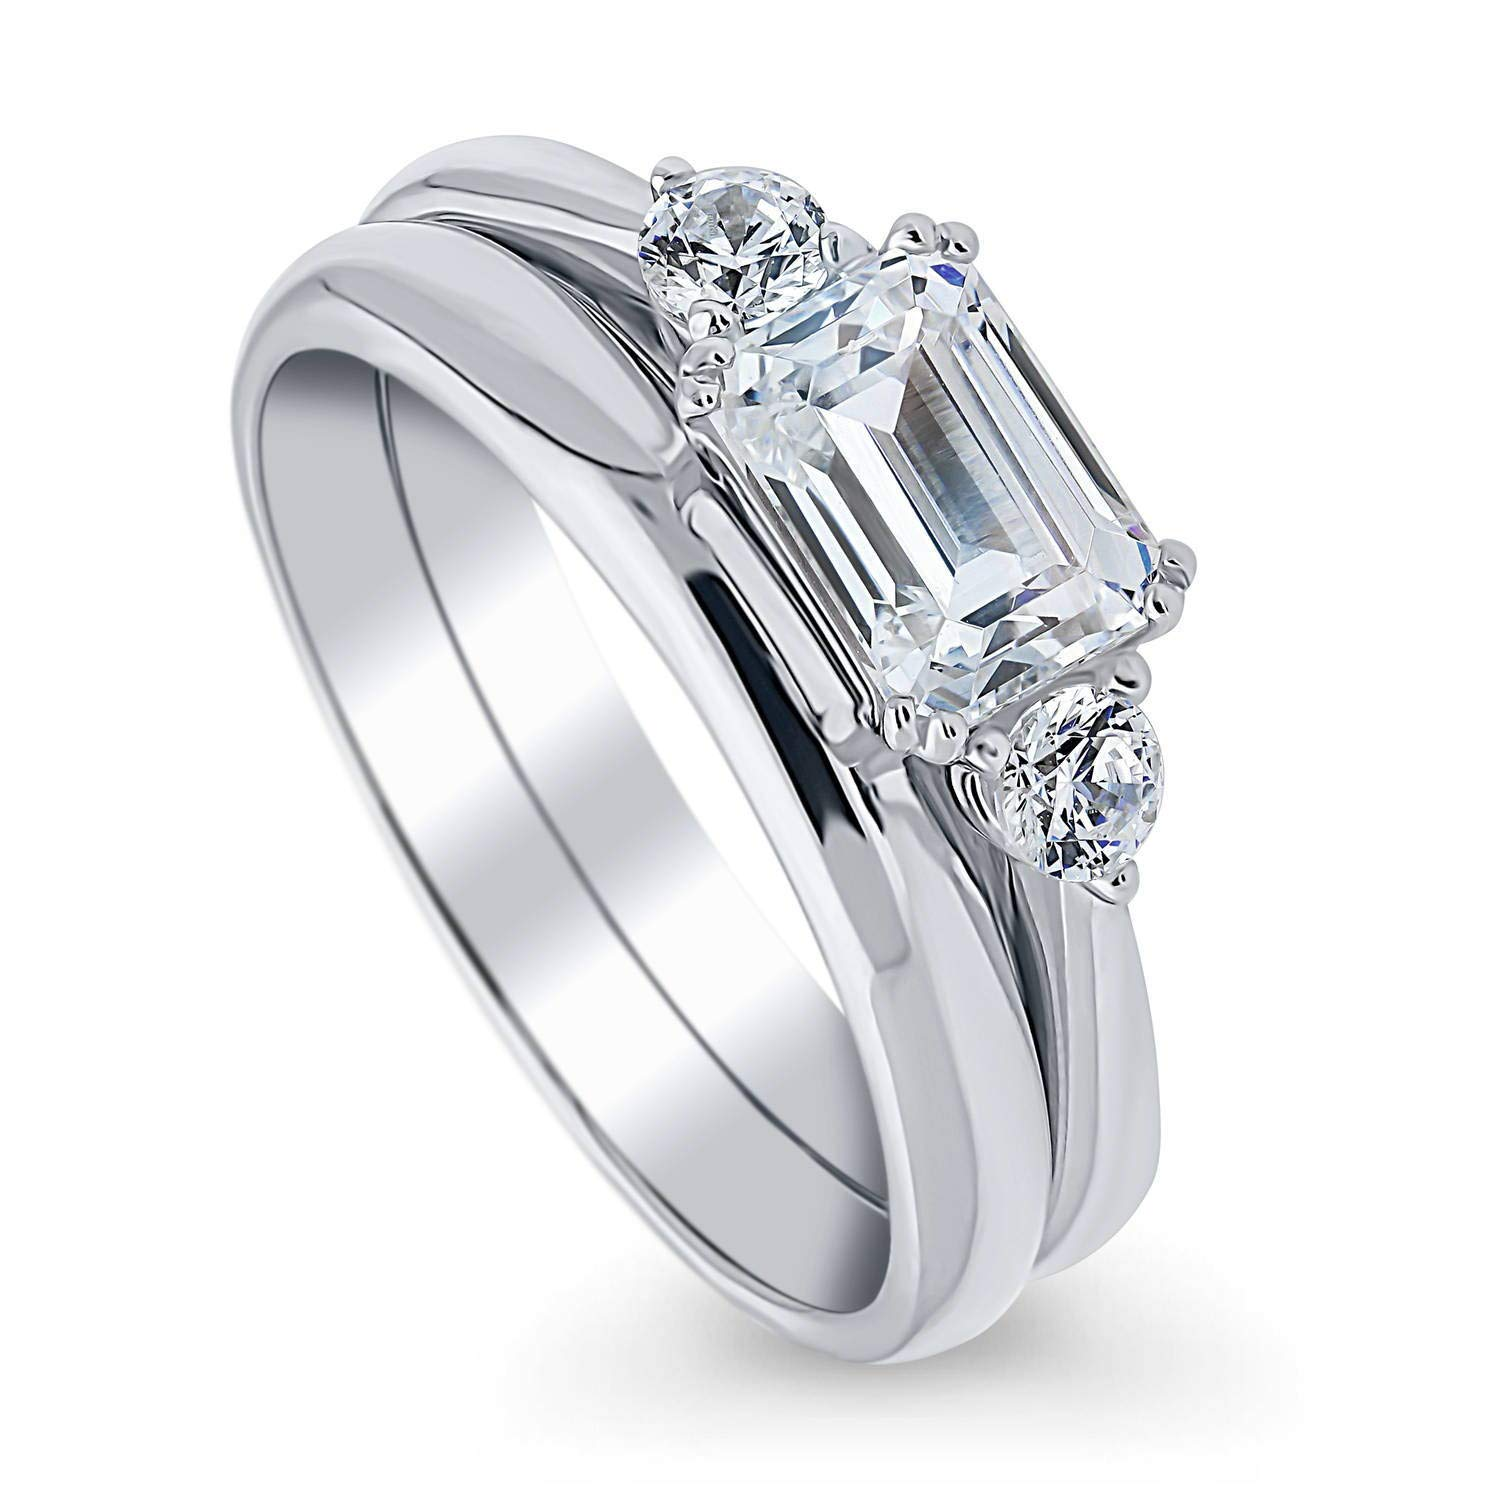 BERRICLE Rhodium Plated Sterling Silver 3-Stone East-West Engagement Wedding Ring Set Made with Swarovski Zirconia Emerald Cut 1.22 CTW Size 4 by BERRICLE